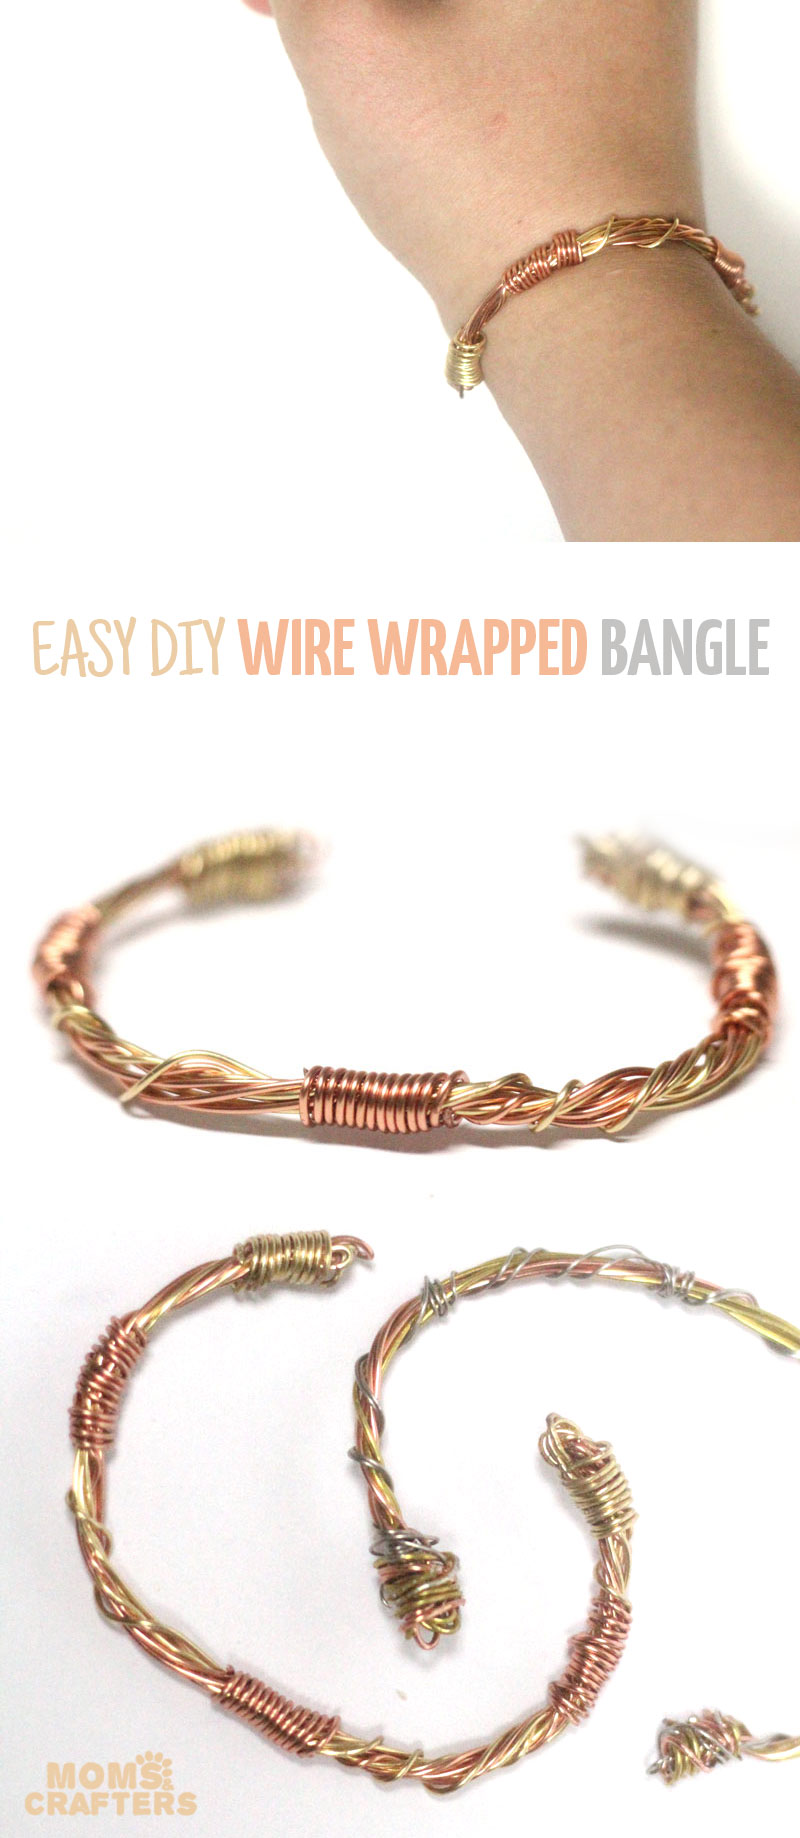 This beautiful wire wrapped bangle is perfect for stacking, for day or evening! I even wear mine alone and get so many compliments - just follow the simple step by step jewelry making tutorial including a video as well. This DIY jewelry making project is perfect for beginners or intermediate level